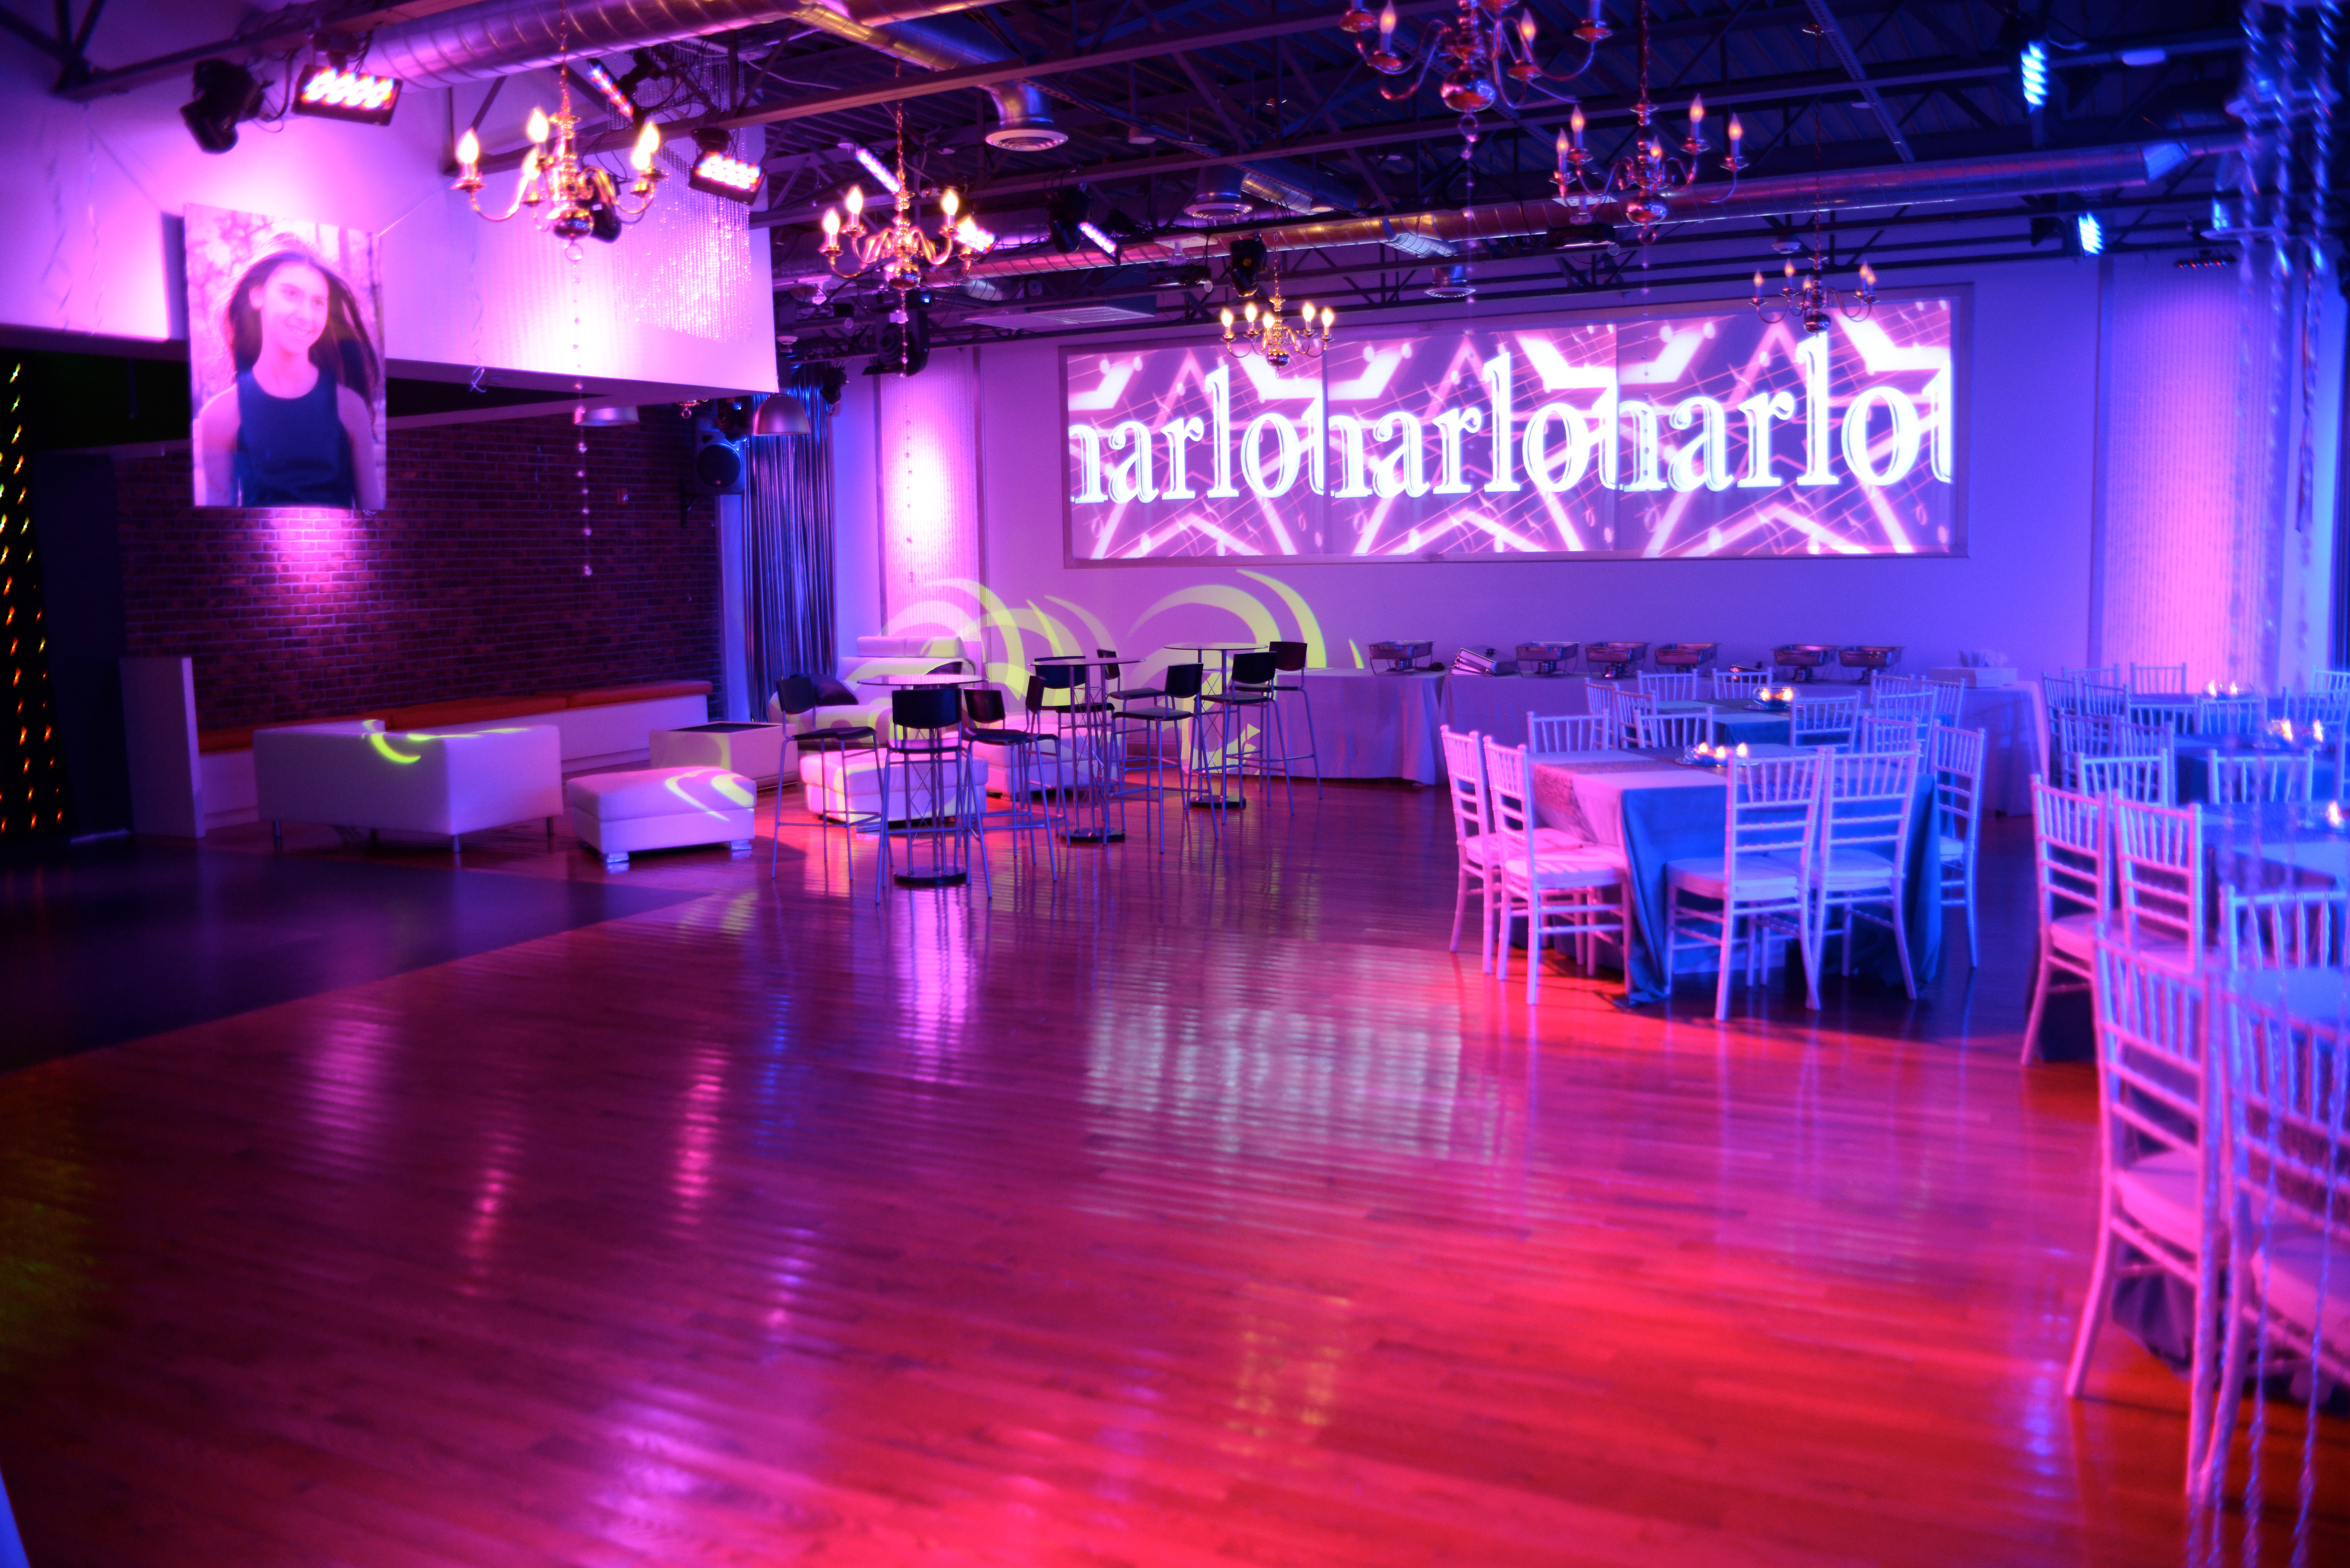 Party Room Nj And Event Space Nj Party Room Nj And Event